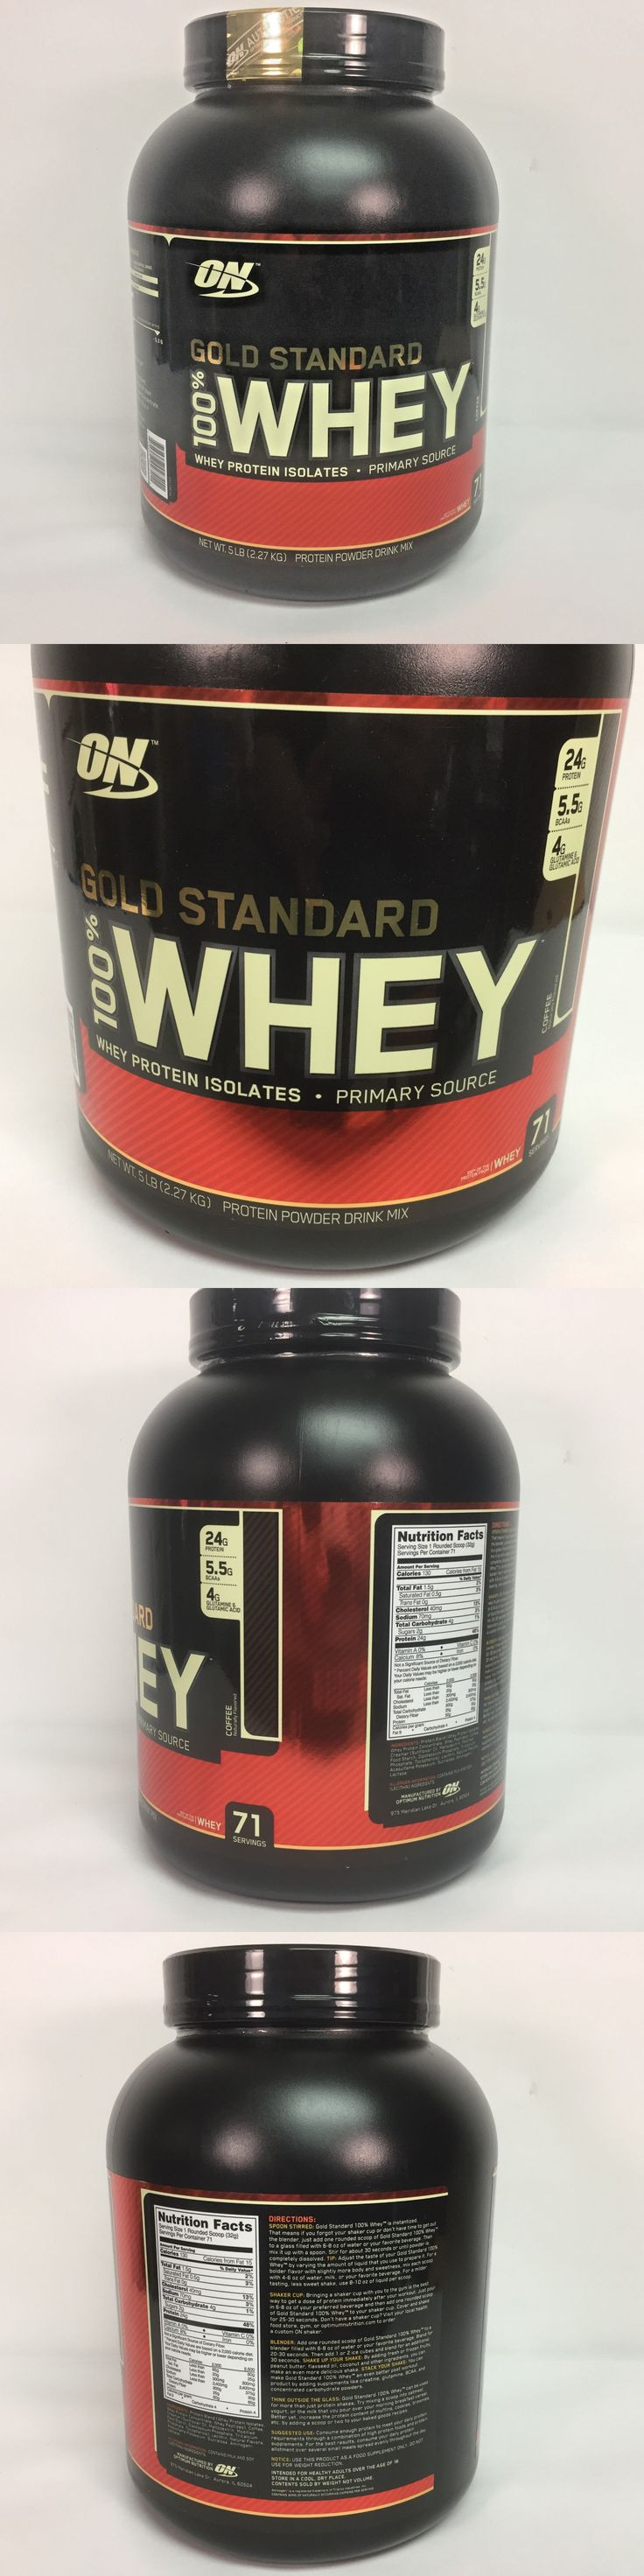 Protein Shakes and Bodybuilding: On Gold Standard 100% Whey | Protein Powder Drink Mix | 5Lb | Coffee Flavor -> BUY IT NOW ONLY: $45 on eBay!